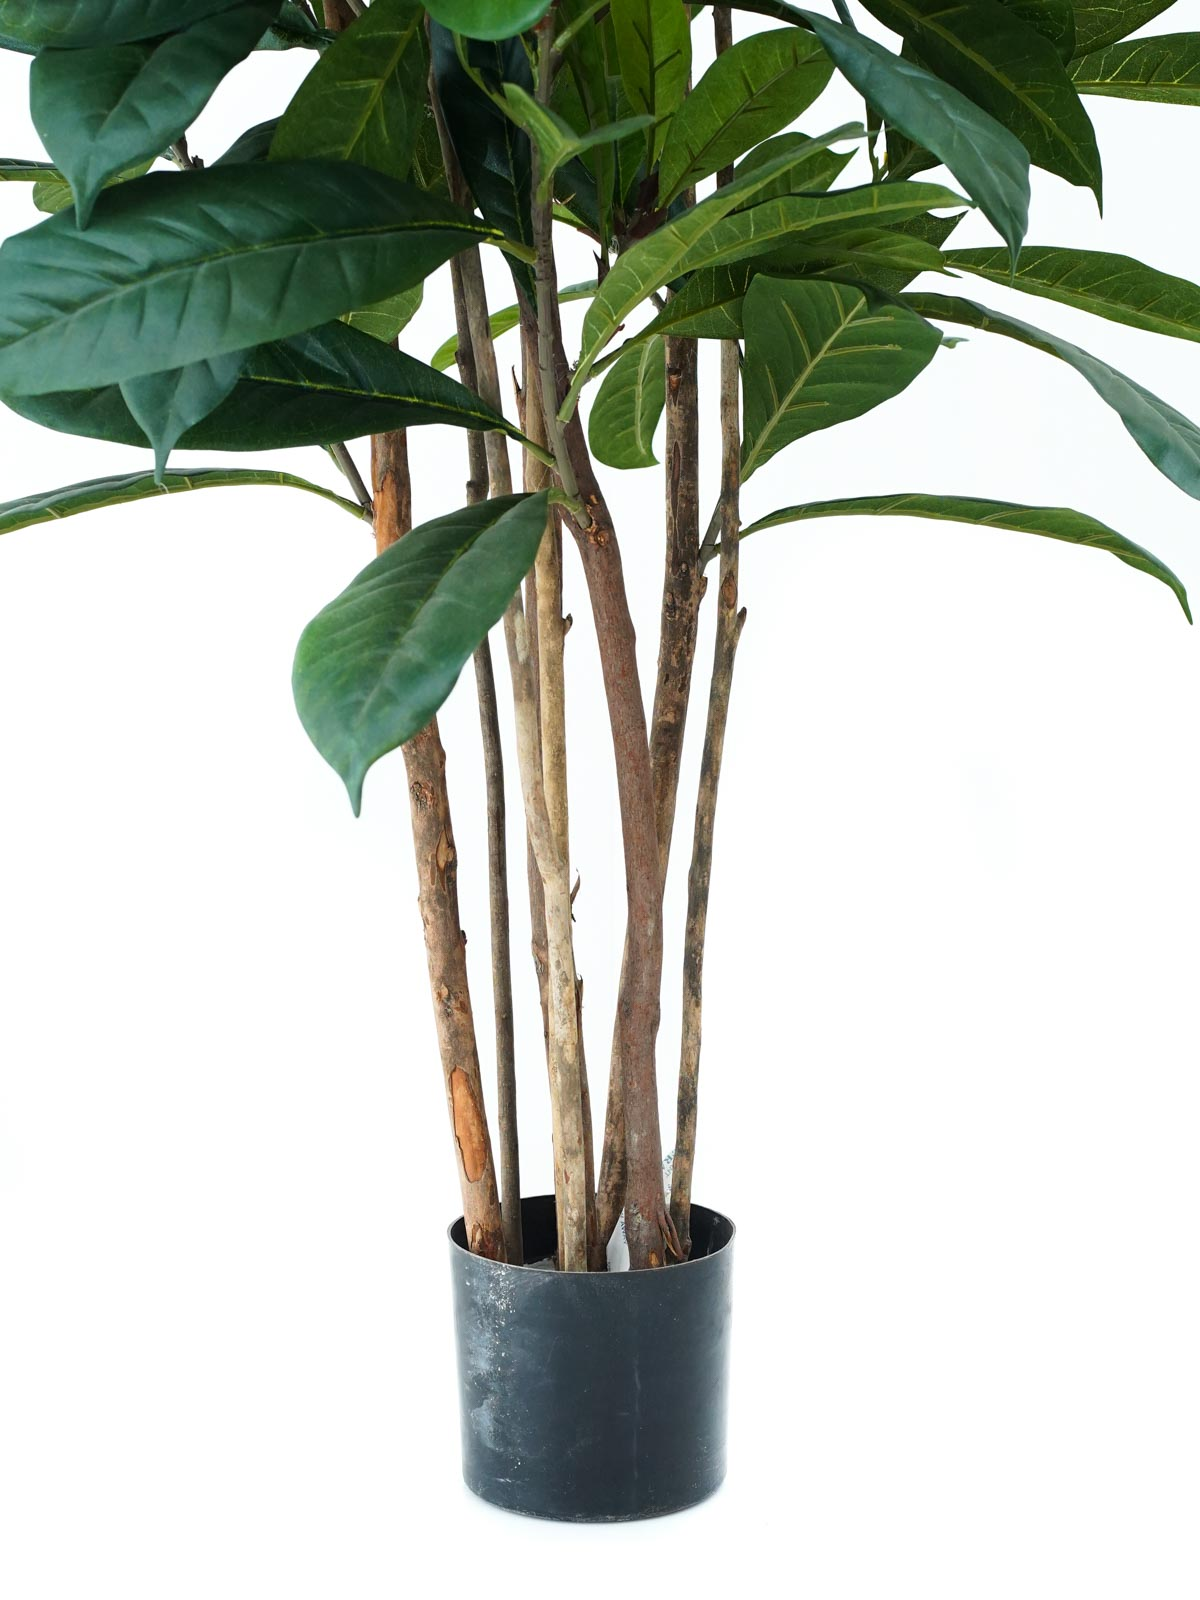 Ficus Cyathistipula Tree (Med) Artificial Plants Trees